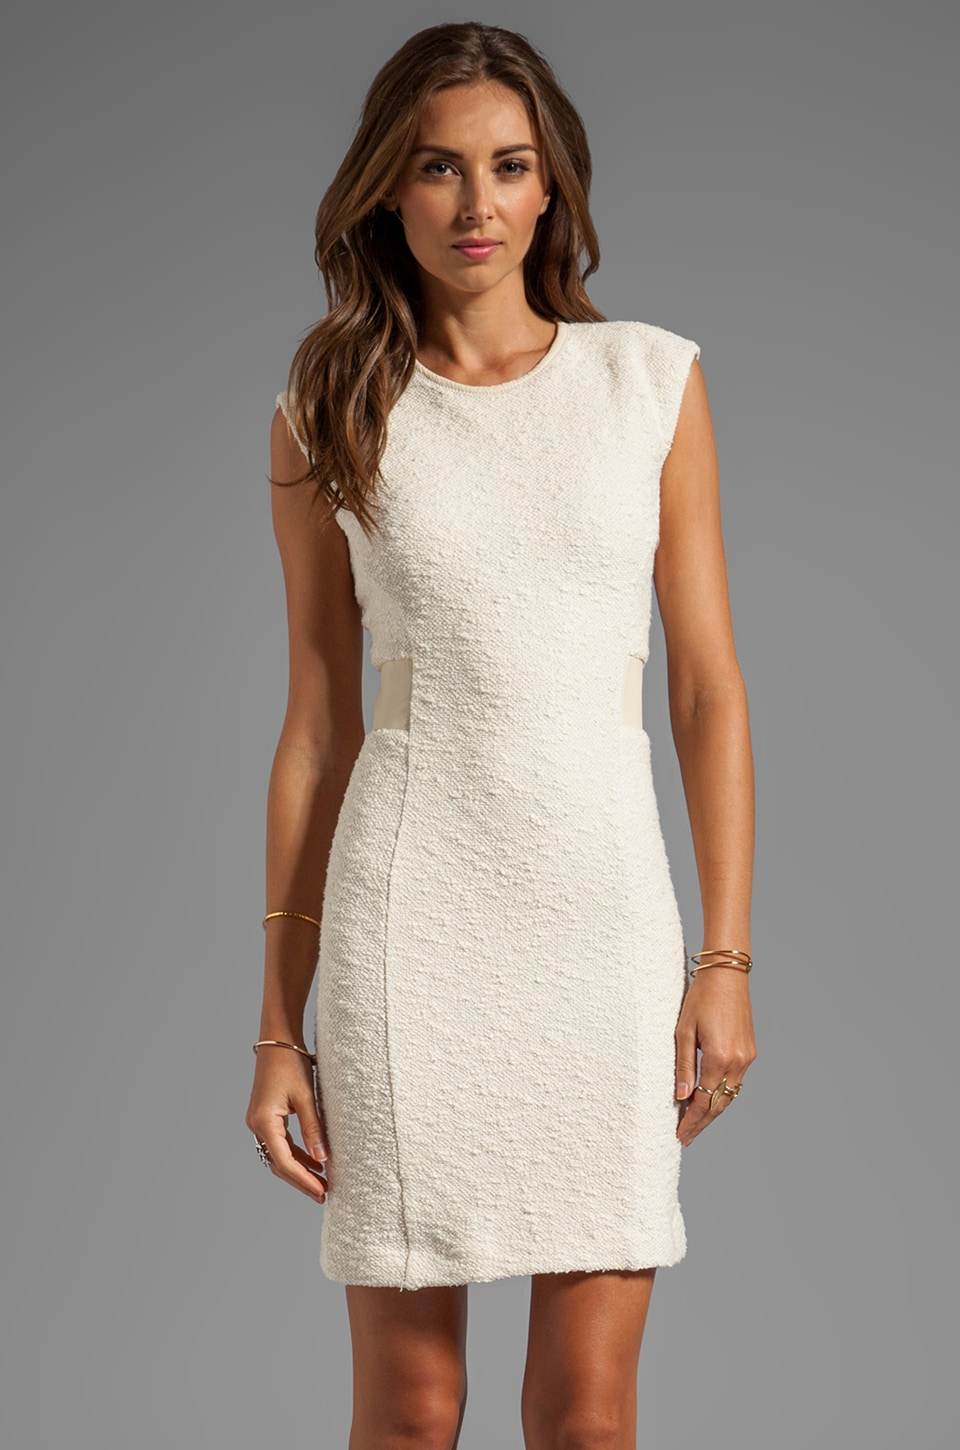 Rebecca Taylor Boucle Detailed Sheath Dress in Cream